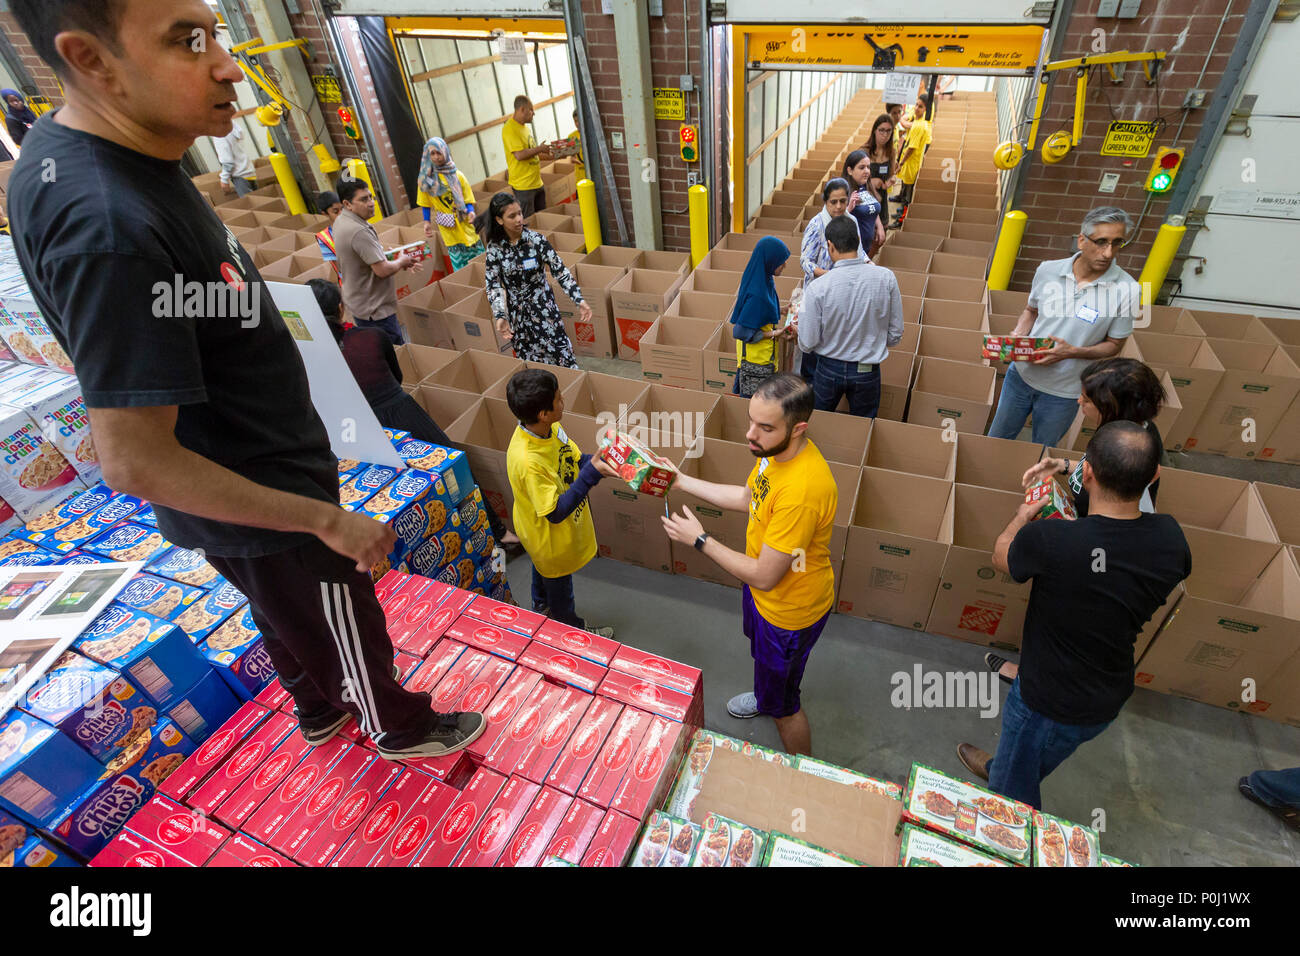 Novi, Michigan USA - 9 June 2018 - Muslim volunteers package food boxes for the less fortunate in the Detroit area during the month of Ramadan. Muslims are expected to contribute to charitable work during the month. Credit: Jim West/Alamy Live News - Stock Image